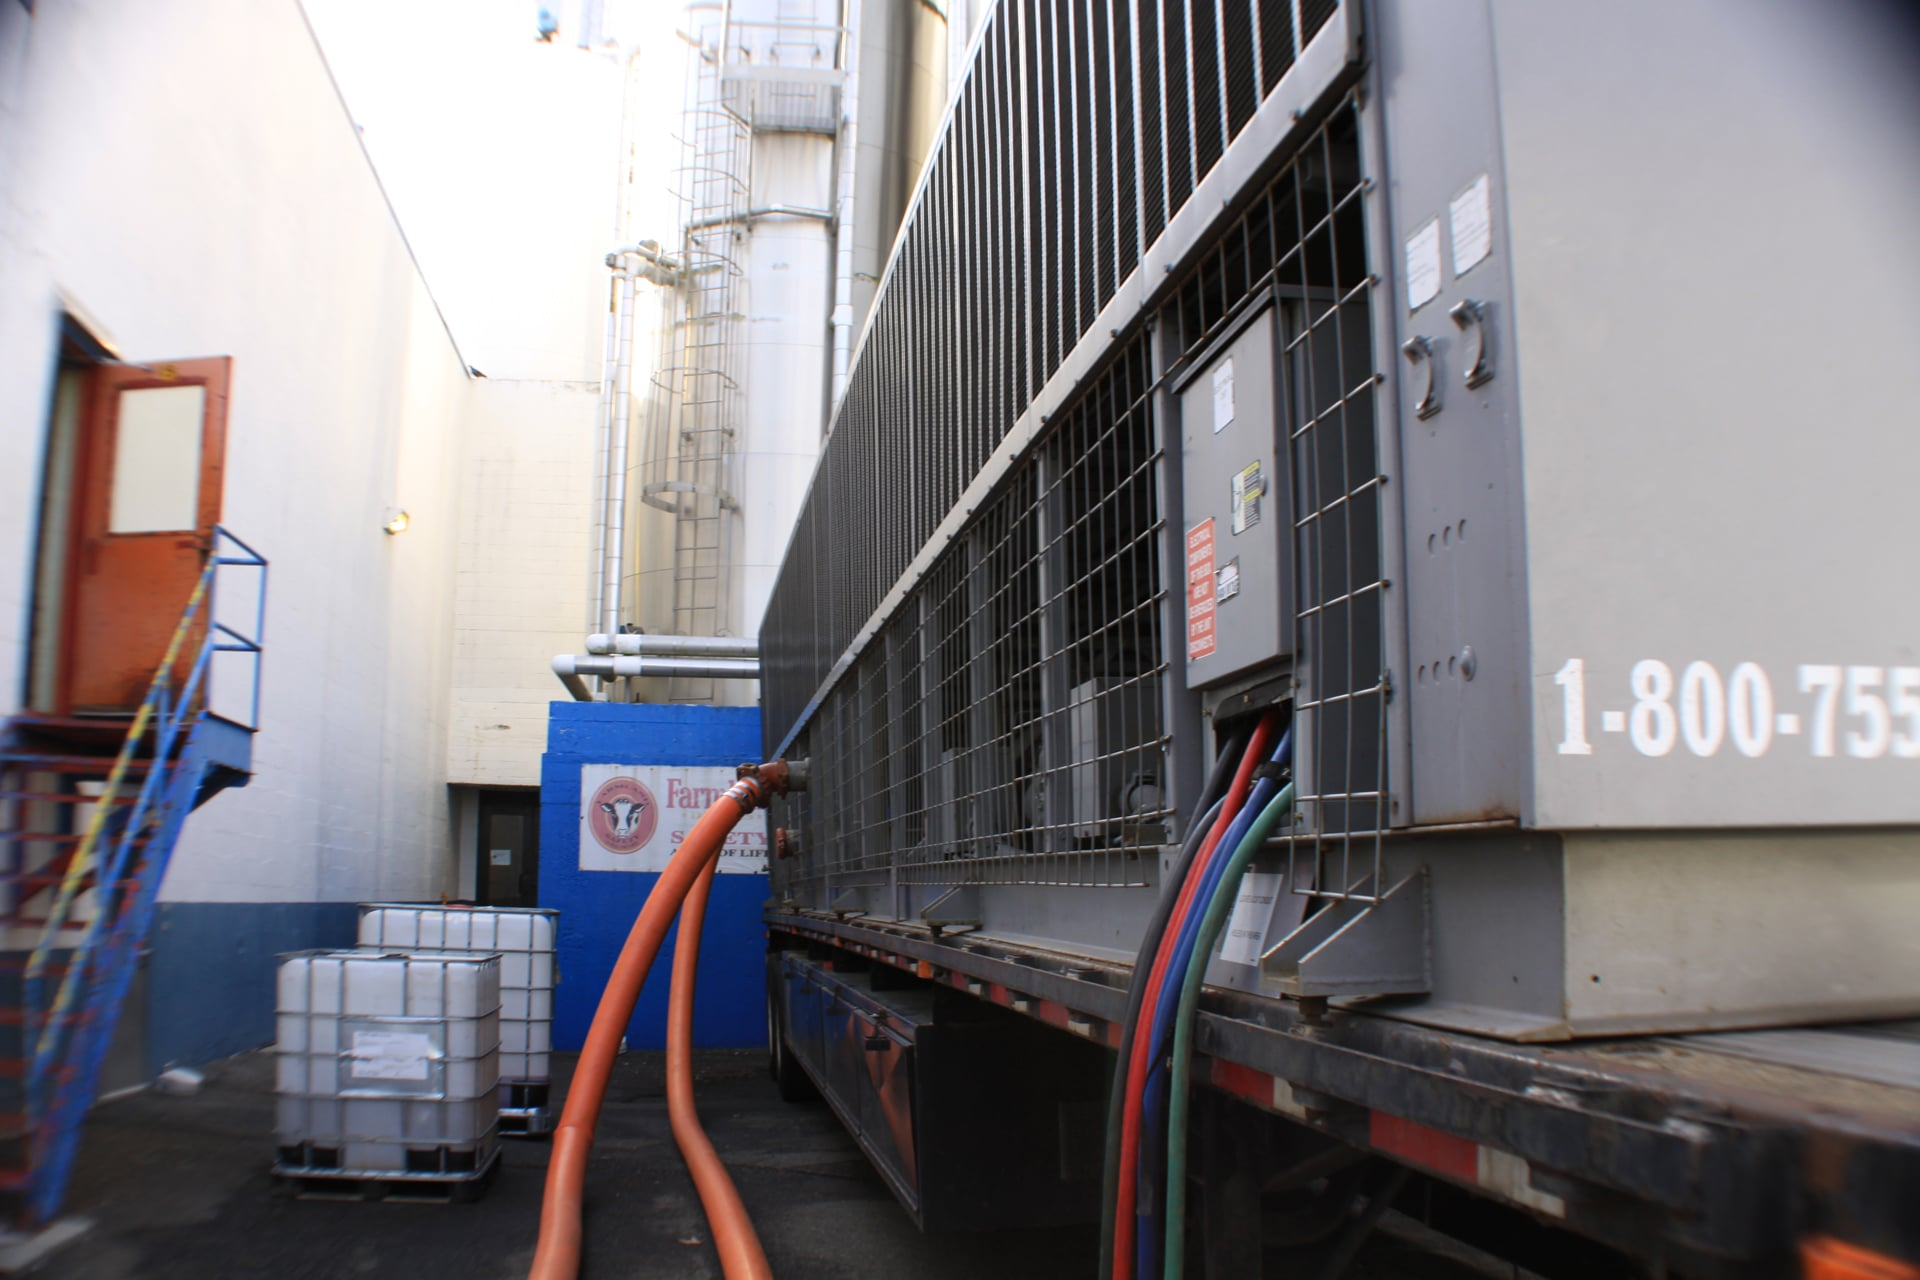 Temporary Chiller Anne Arundel County MD, Air Cooled Chiller Rental Anne Arundel County MD